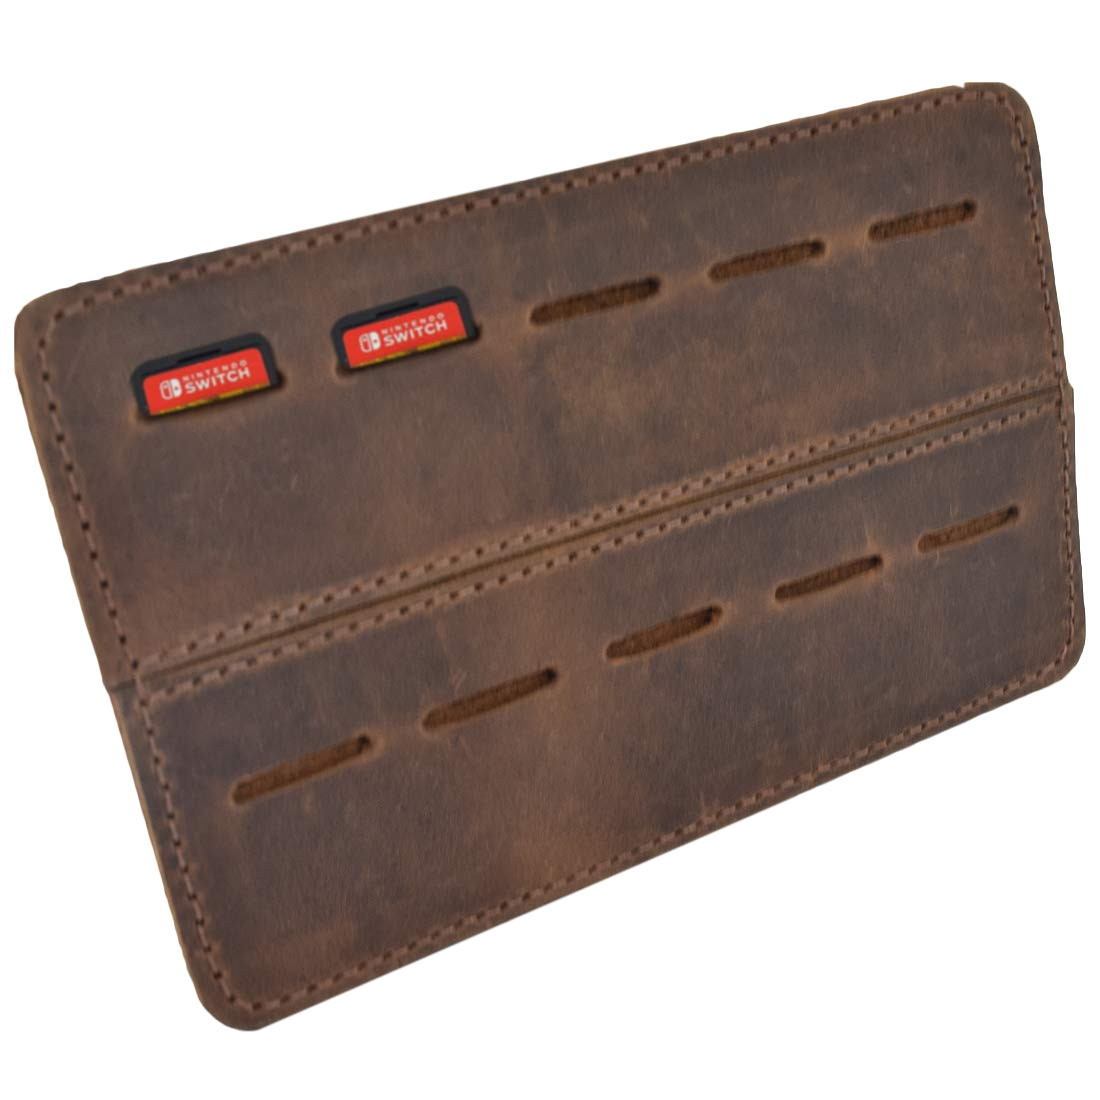 Over the Door Christmas Card Holder Metal Leather Switch Game Card Holder Traveler Case Up to 10 Game Slots Handmade by Hide Drink Bourbon Brown